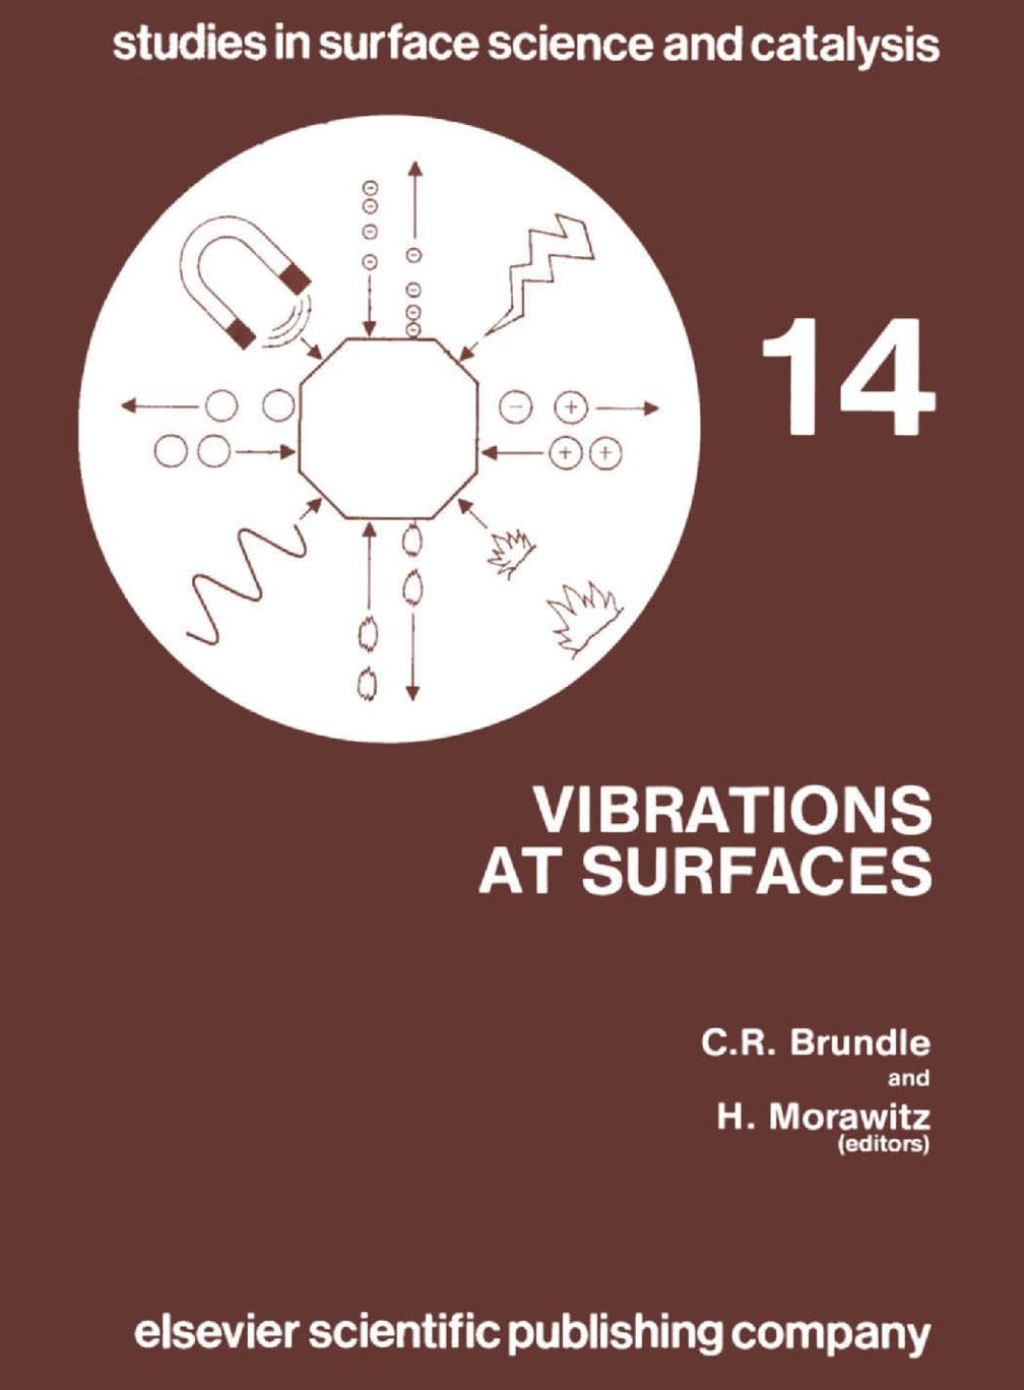 Vibrations at Surfaces (Studies in Surface Science and Catalysis) (ebook) eBooks